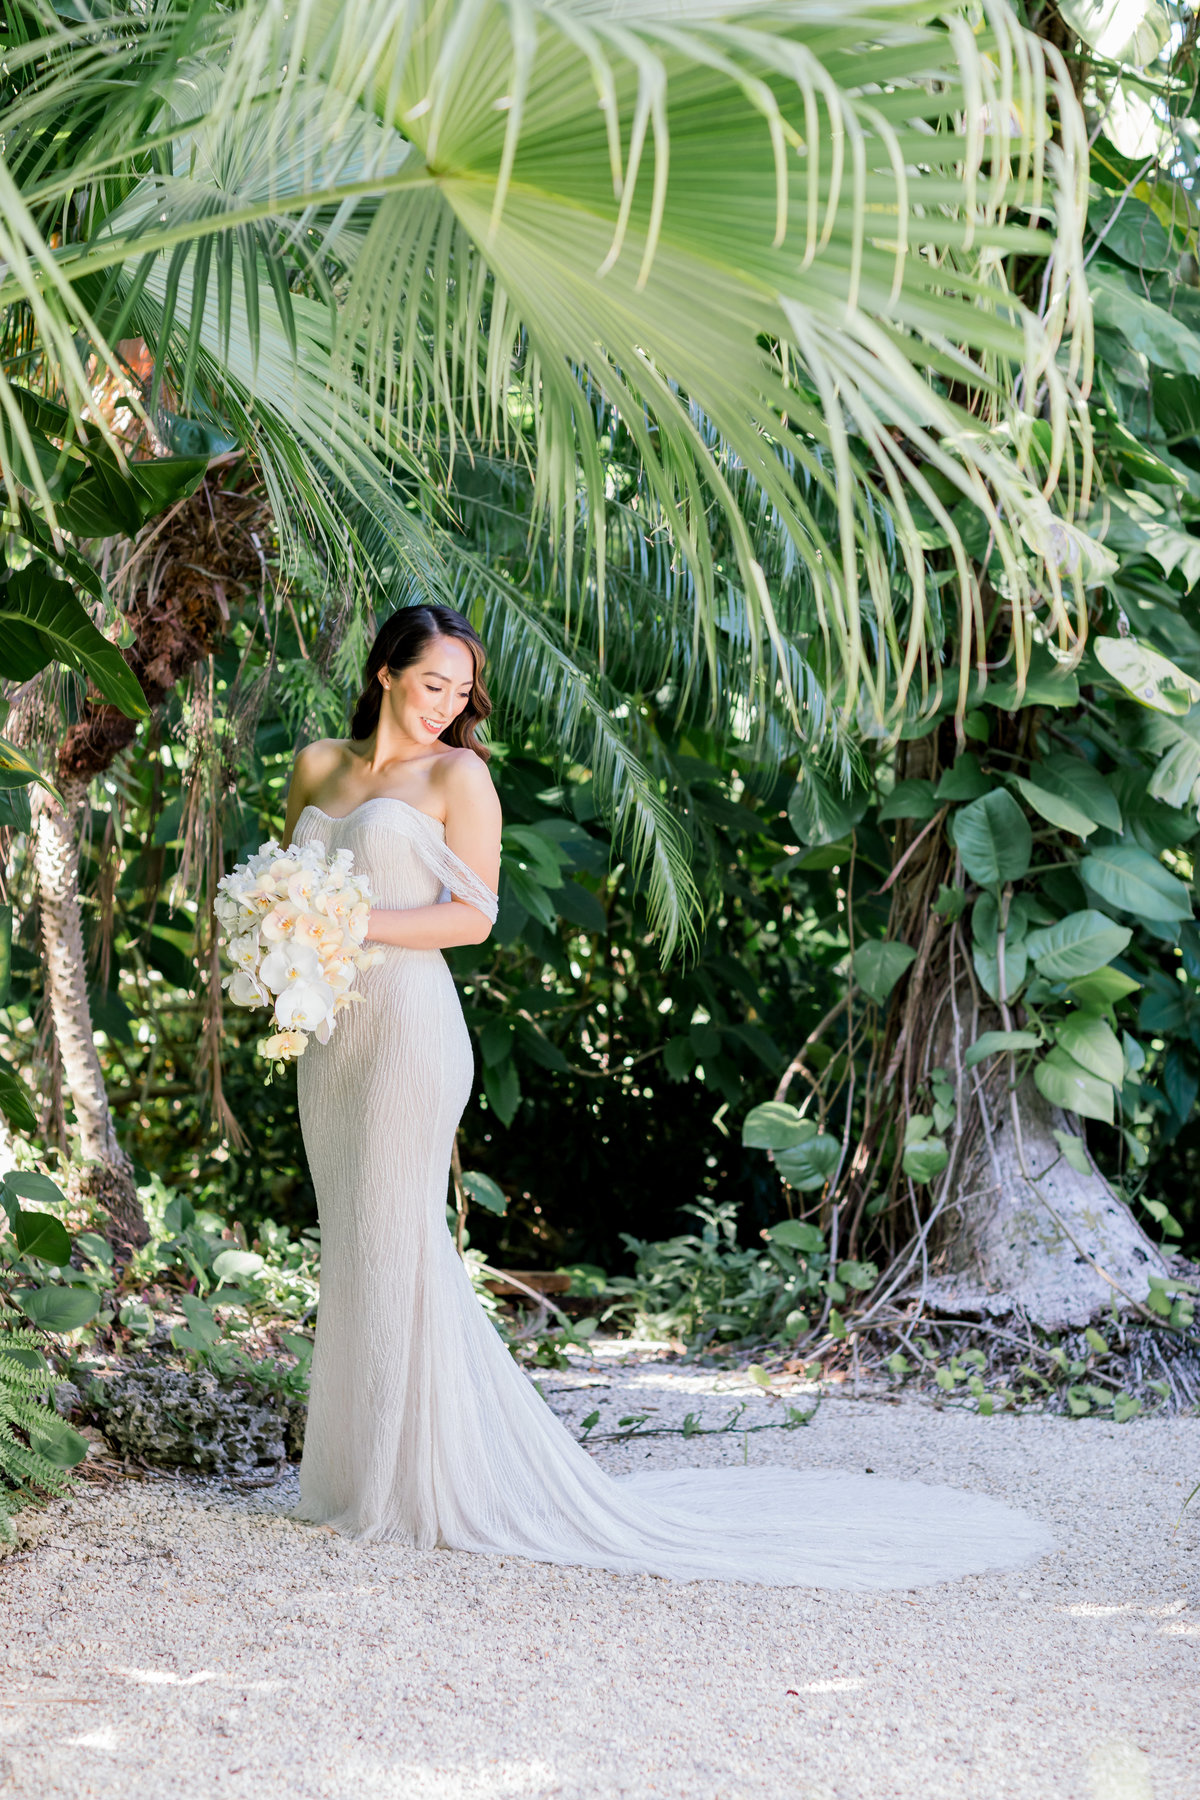 Miami Samsara Garden Wedding  - Destination Wedding Photographer